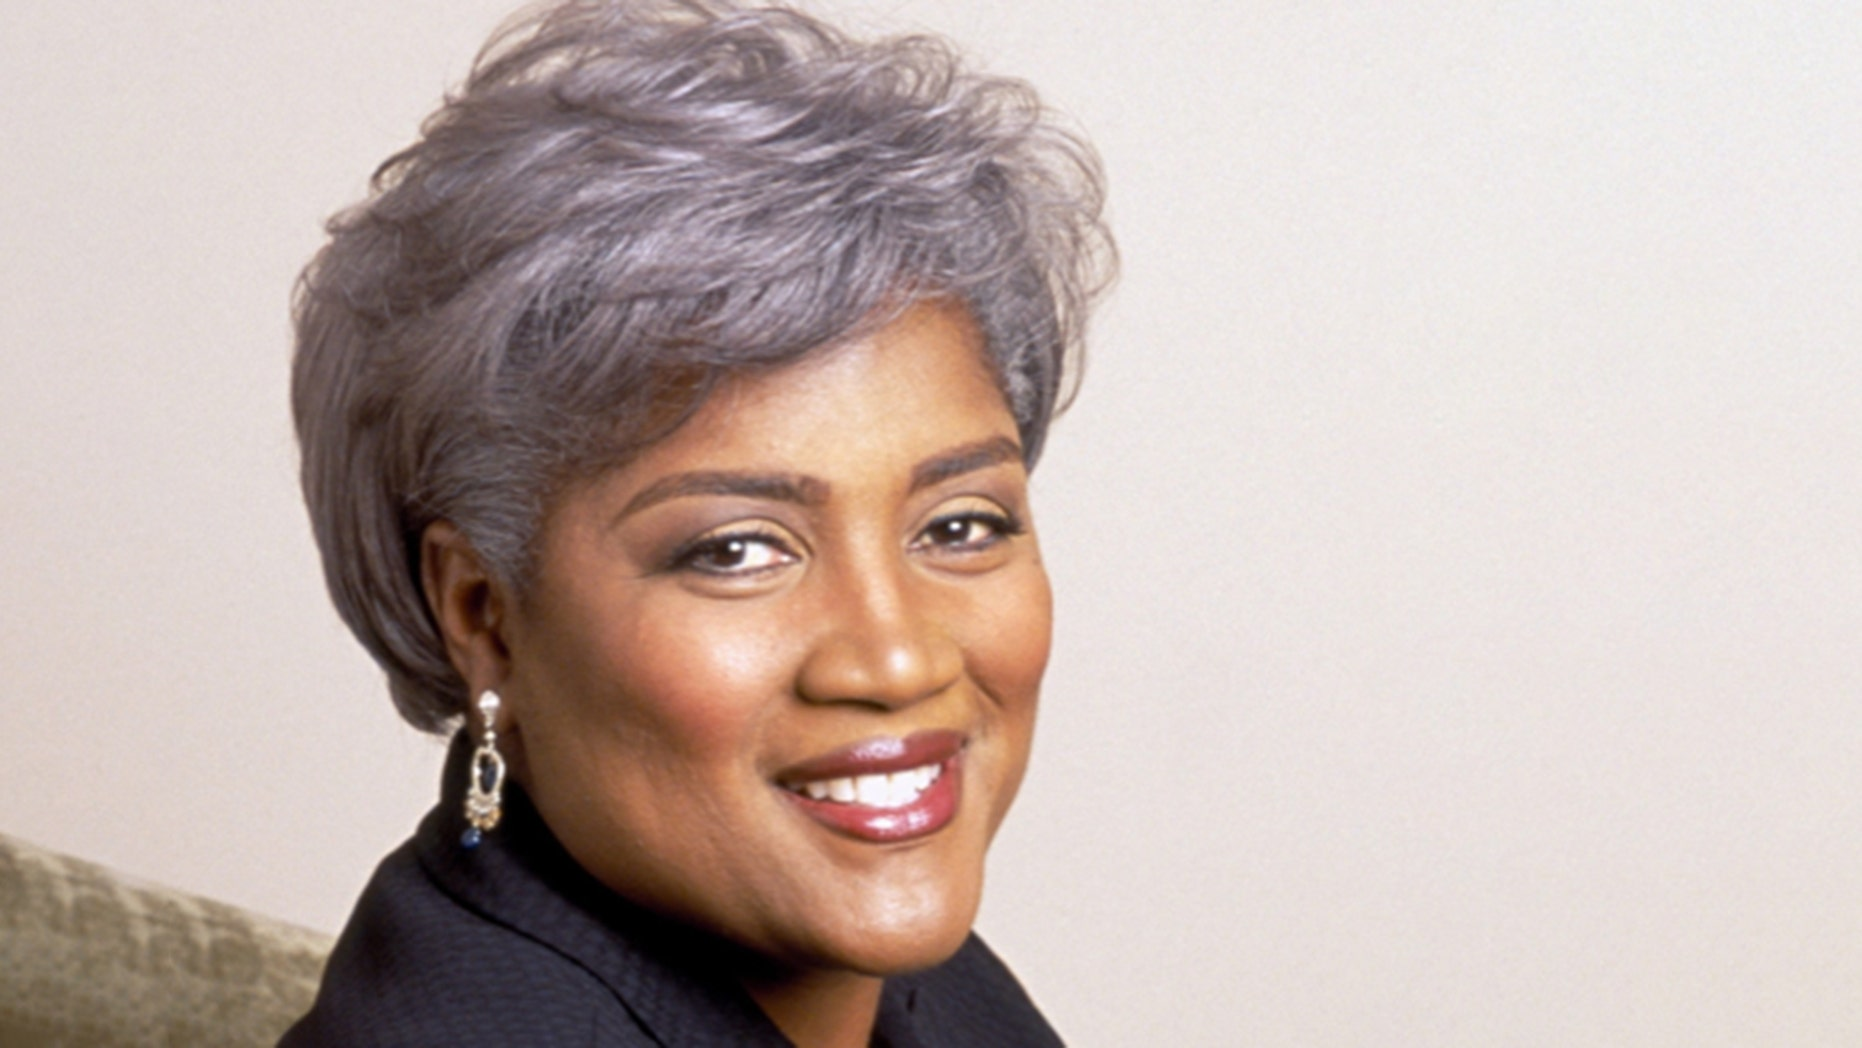 Longtime Democratic strategist Donna Brazile joins Fox News as a contributor.